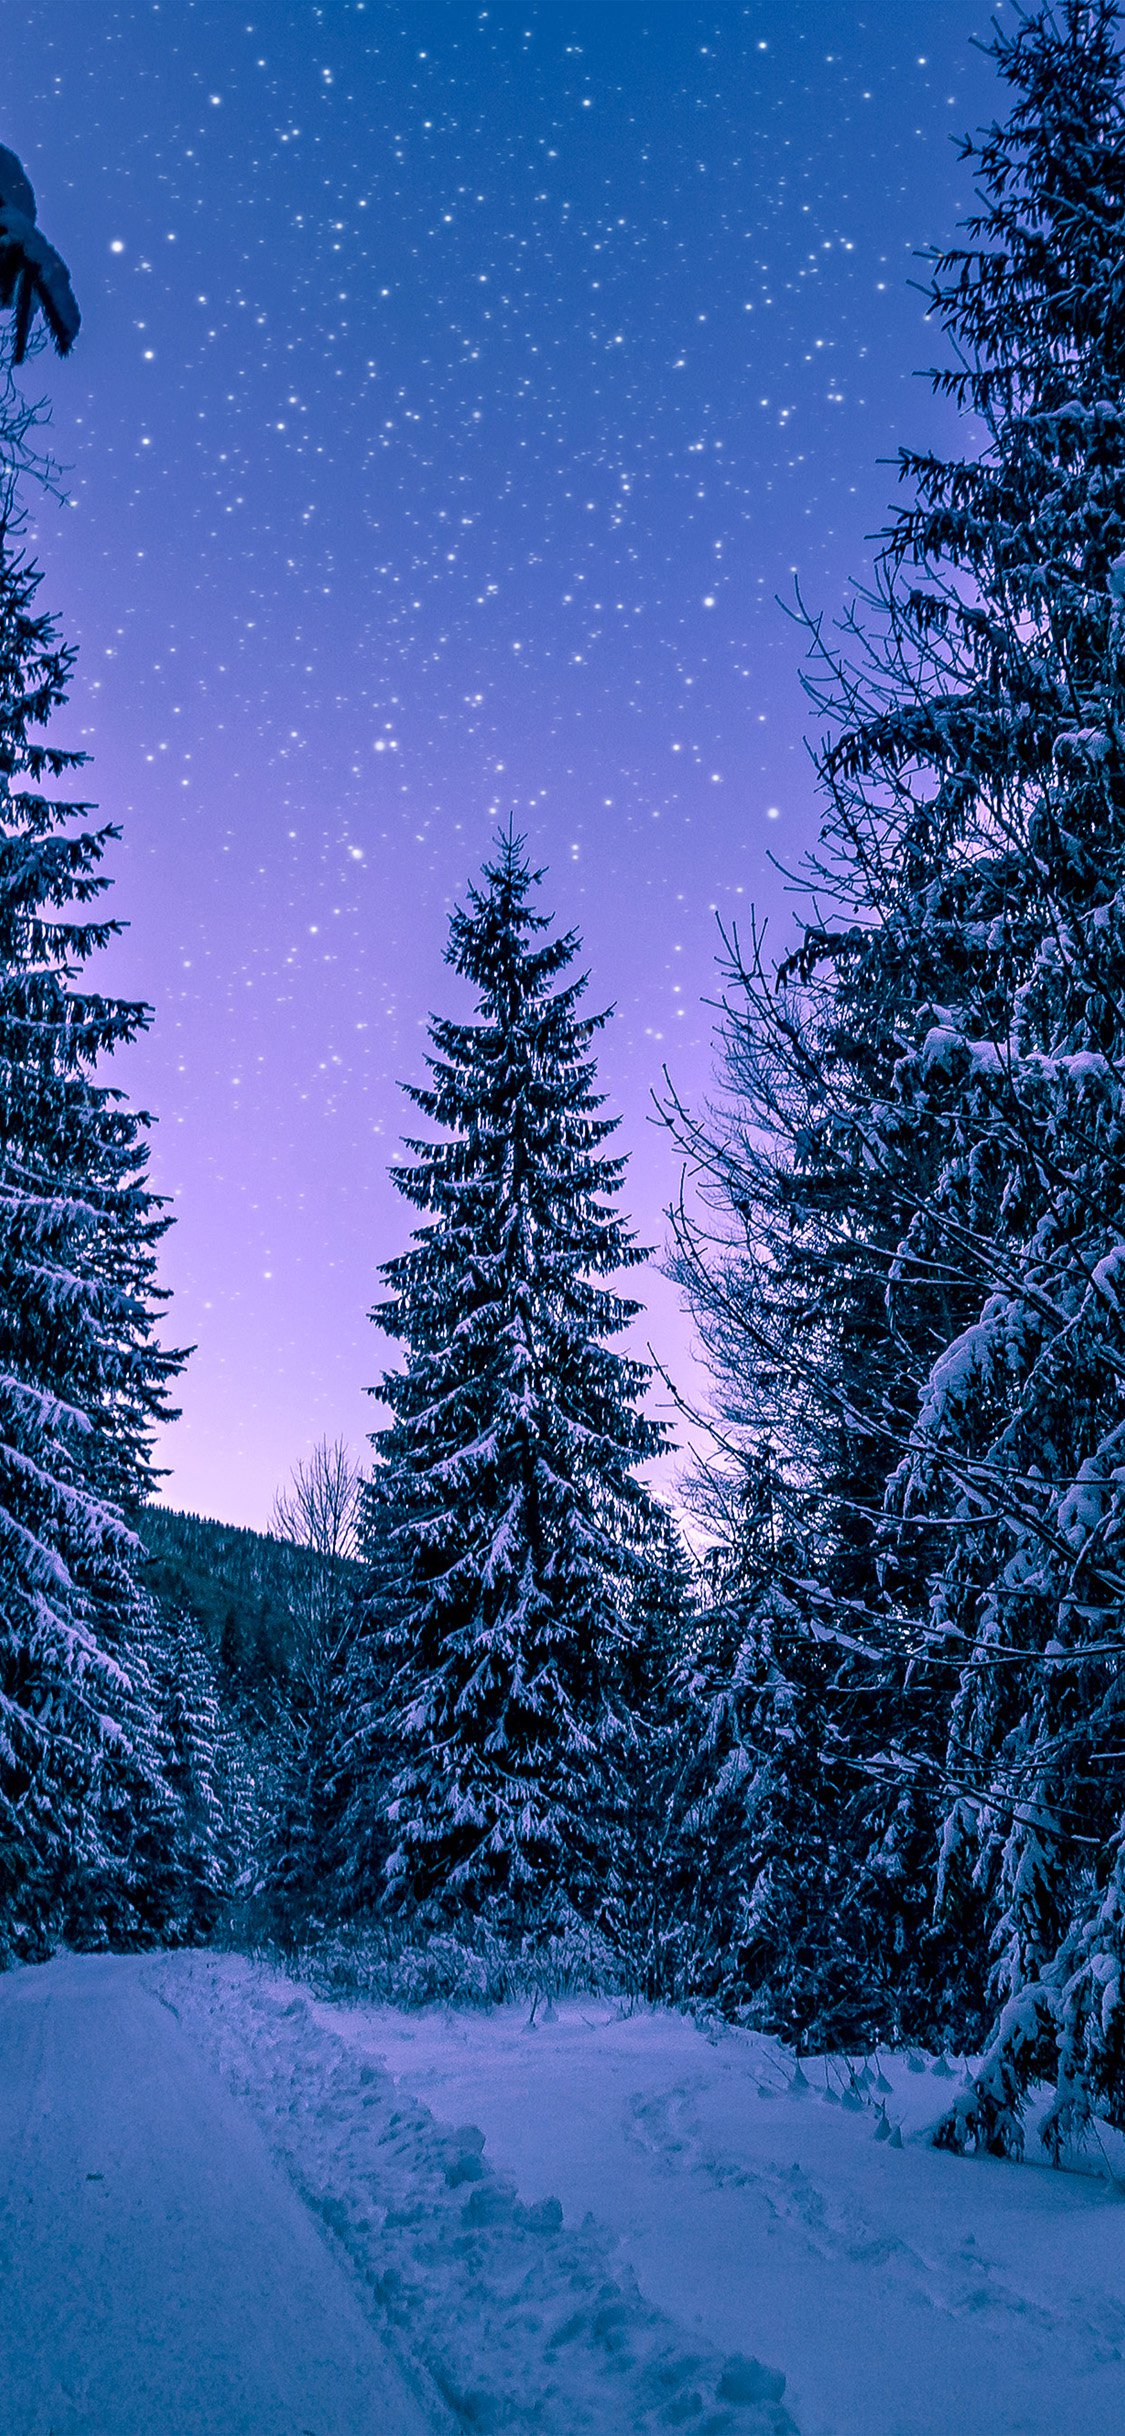 4K Winter Wallpapers For IPhone, IPad, Or MacBook